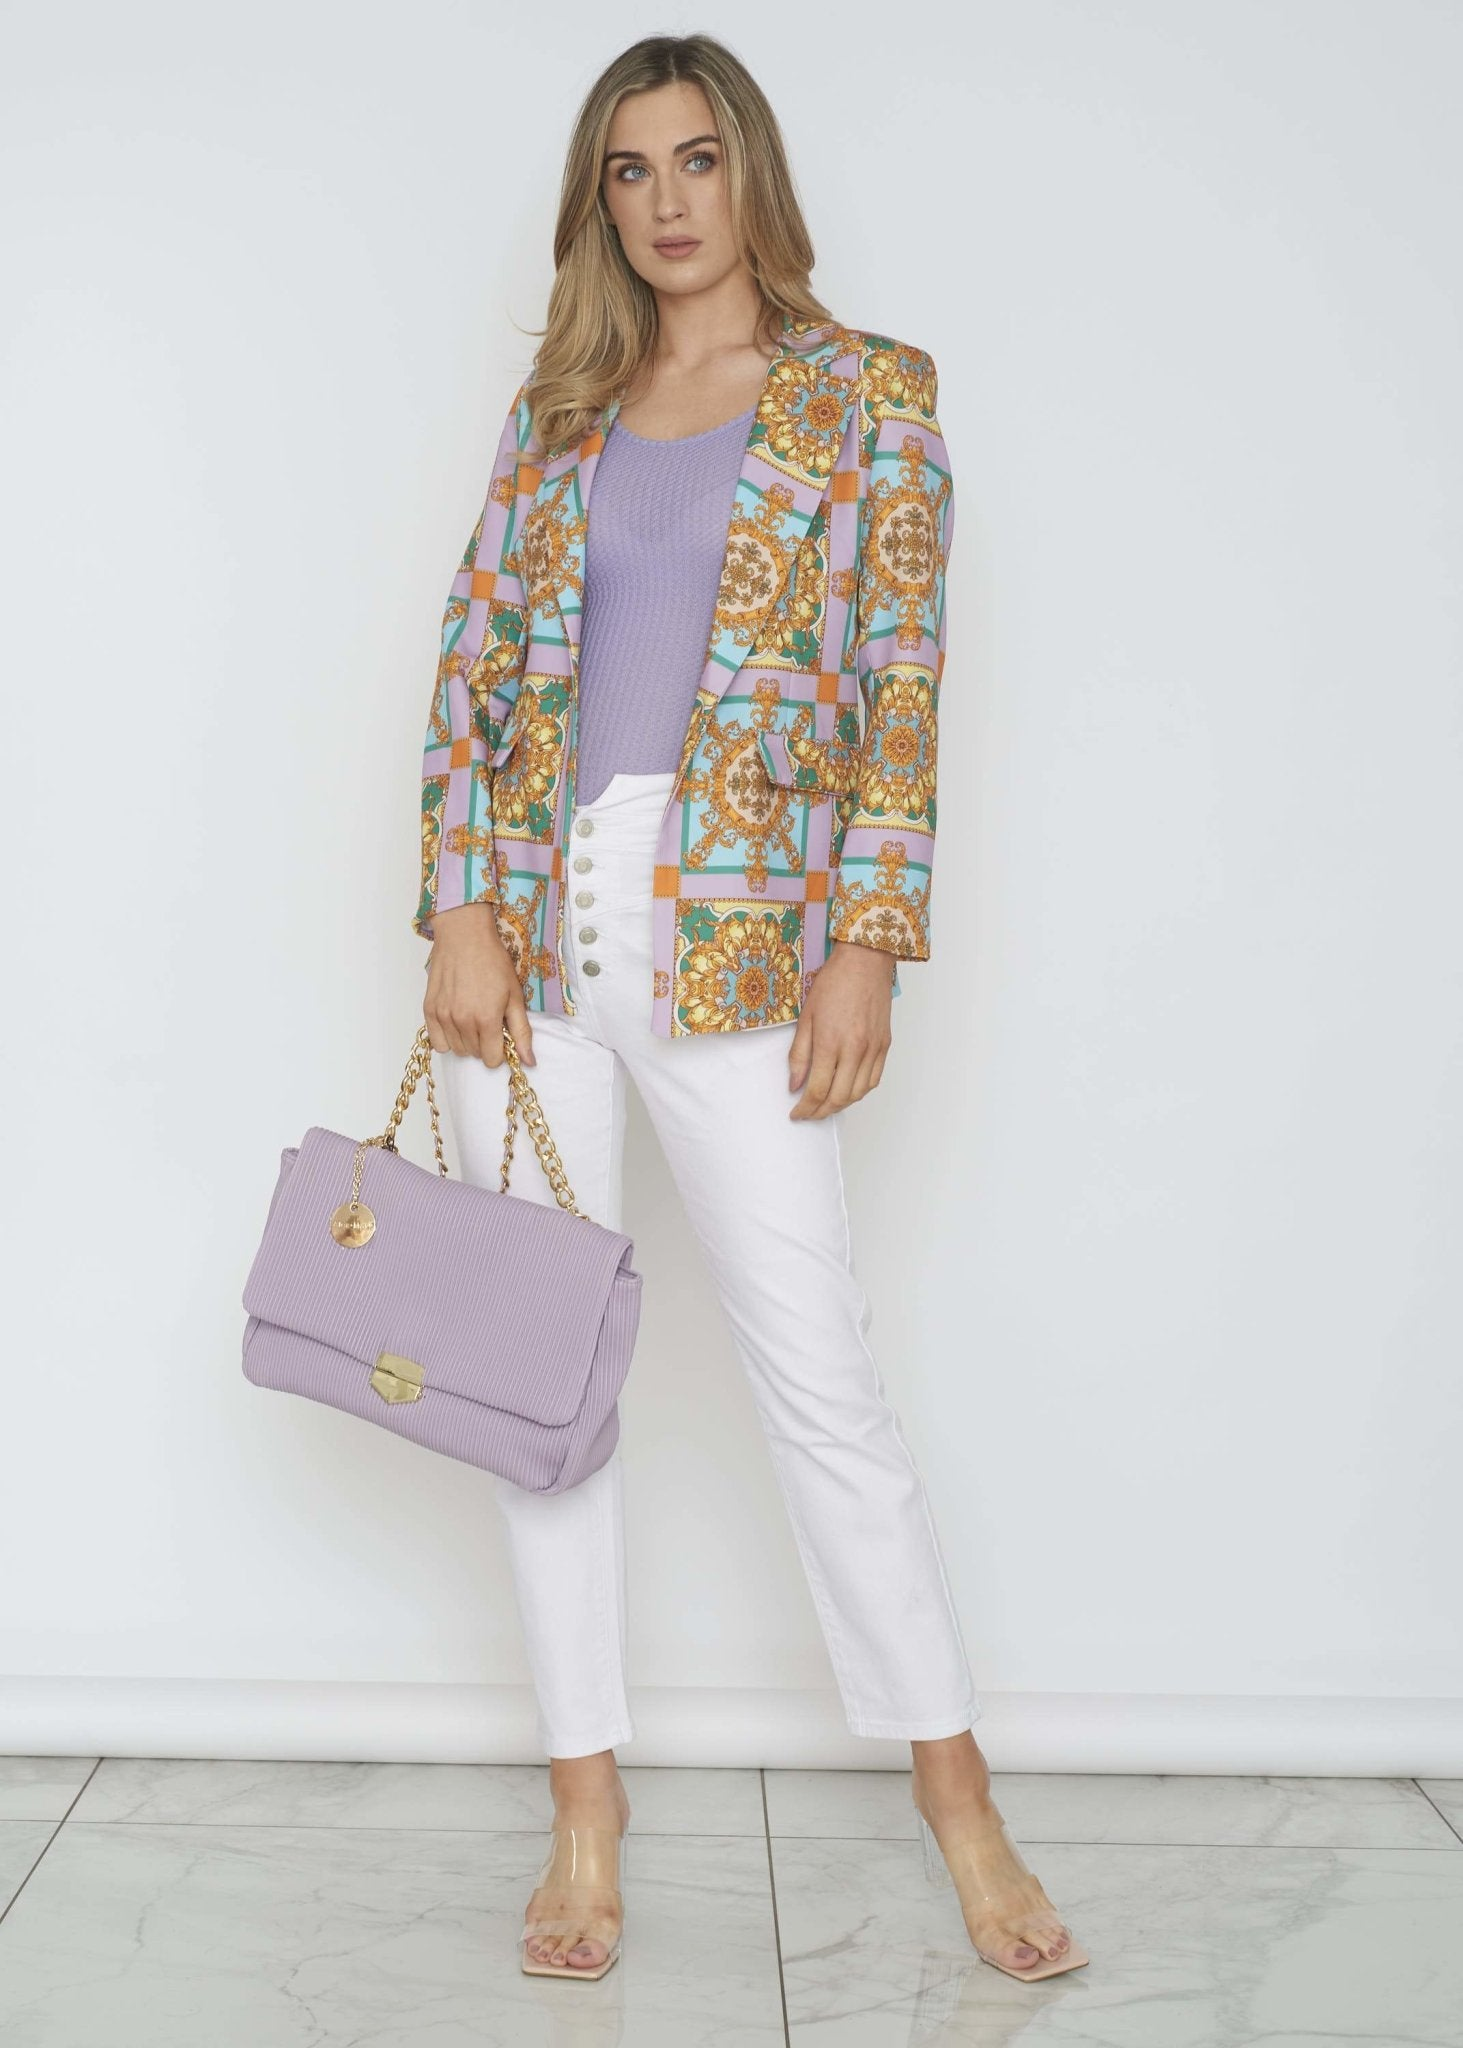 Indie Printed Blazer In Lavender Mix - The Walk in Wardrobe